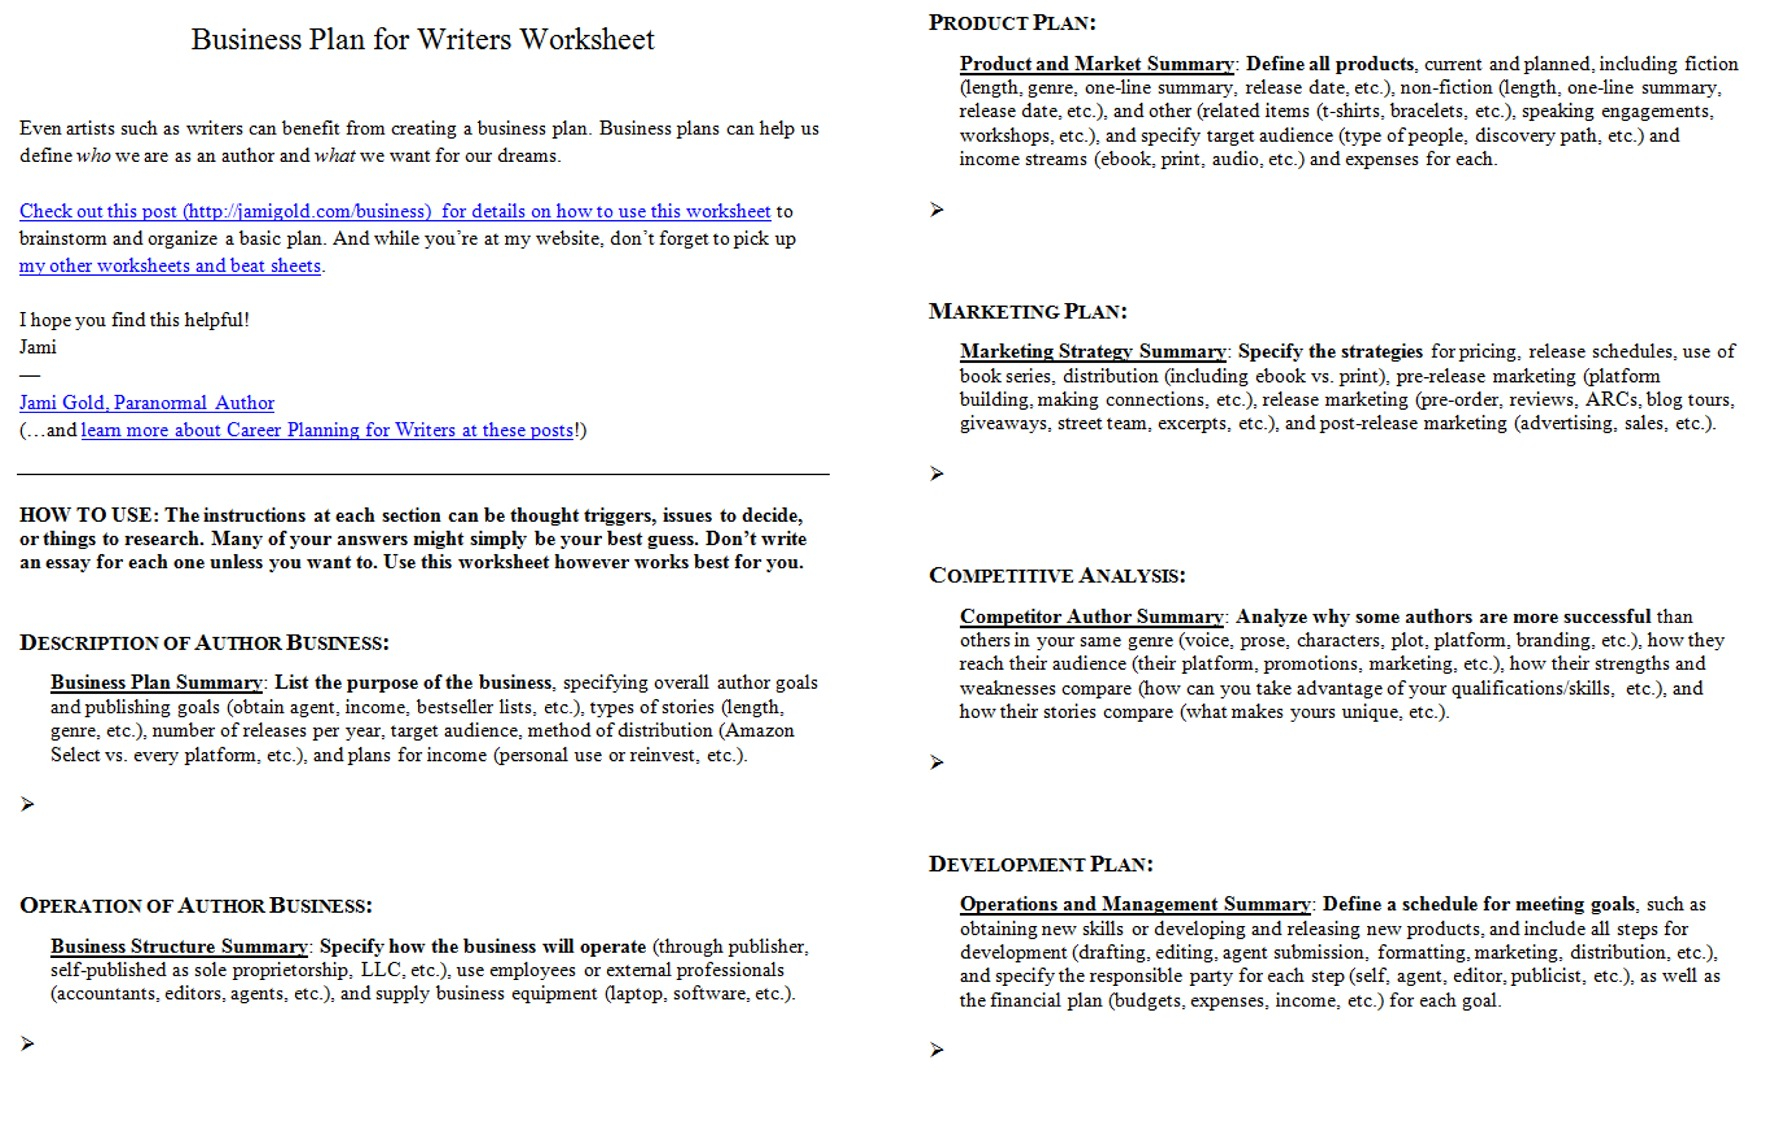 Worksheets Marketing Plan Worksheet introducing the business plan for writers worksheet jami gold screen shot of both pages worksheet